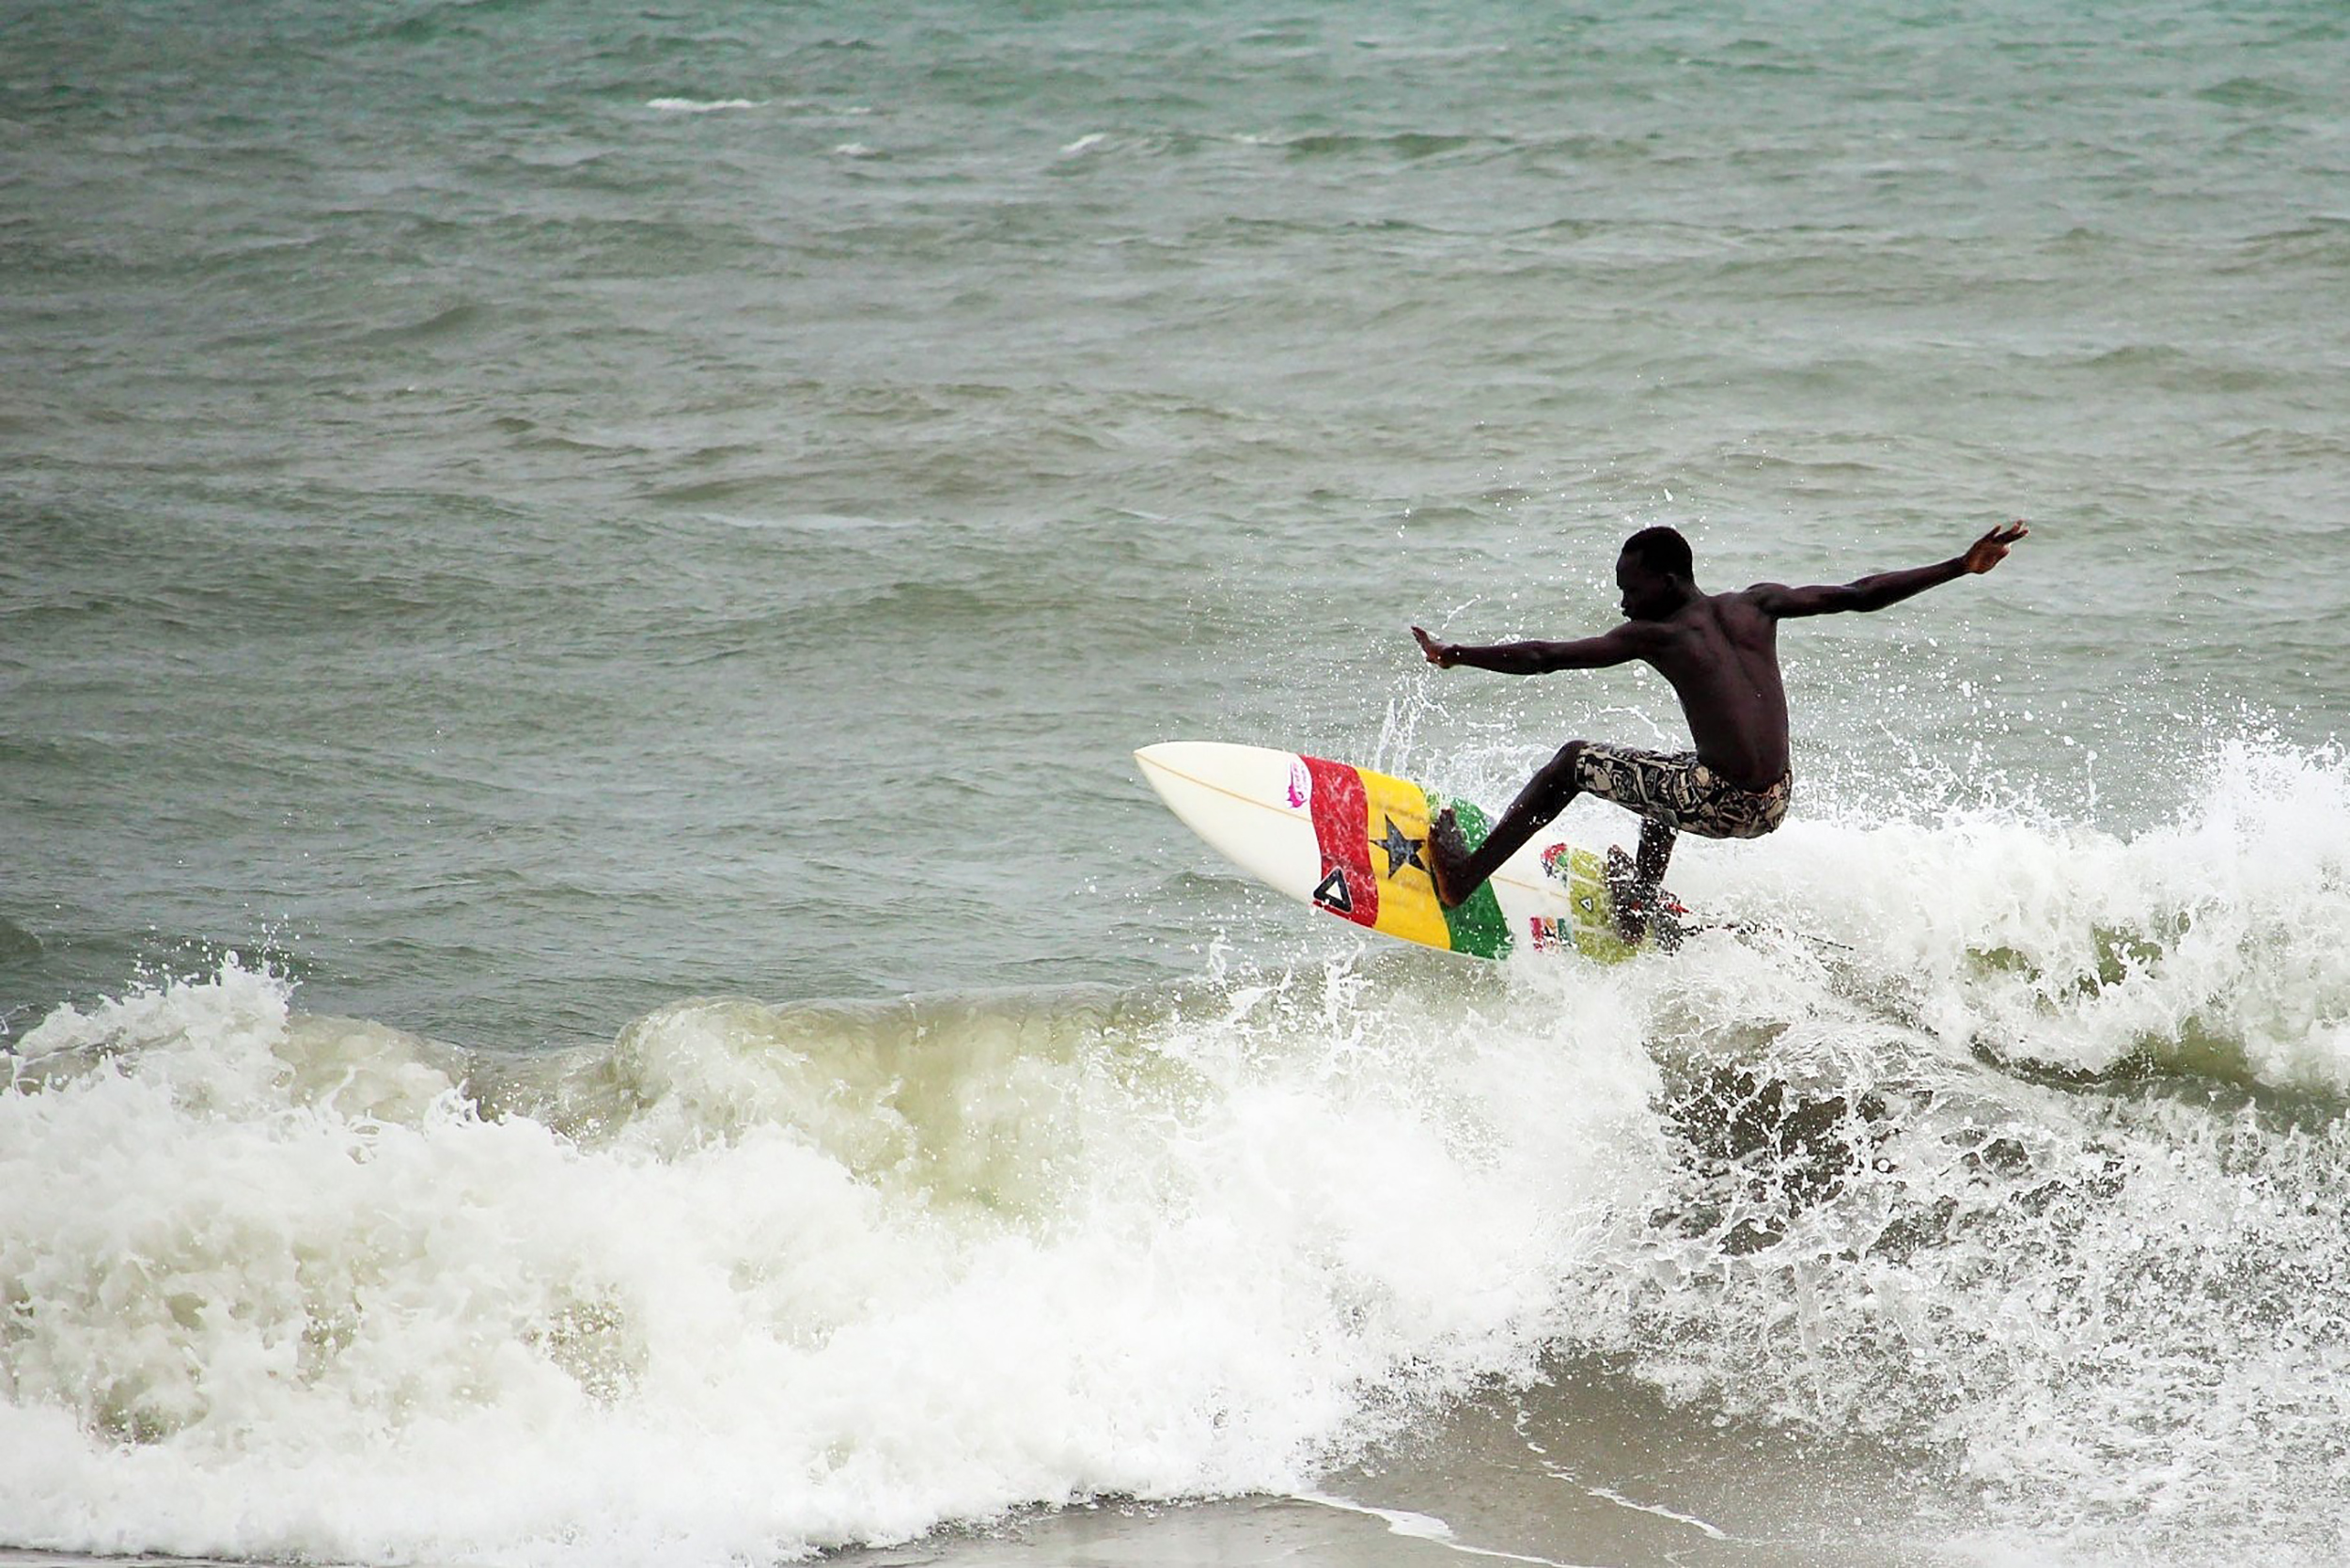 Image: A surfer surfs the ocean swell in Ghana